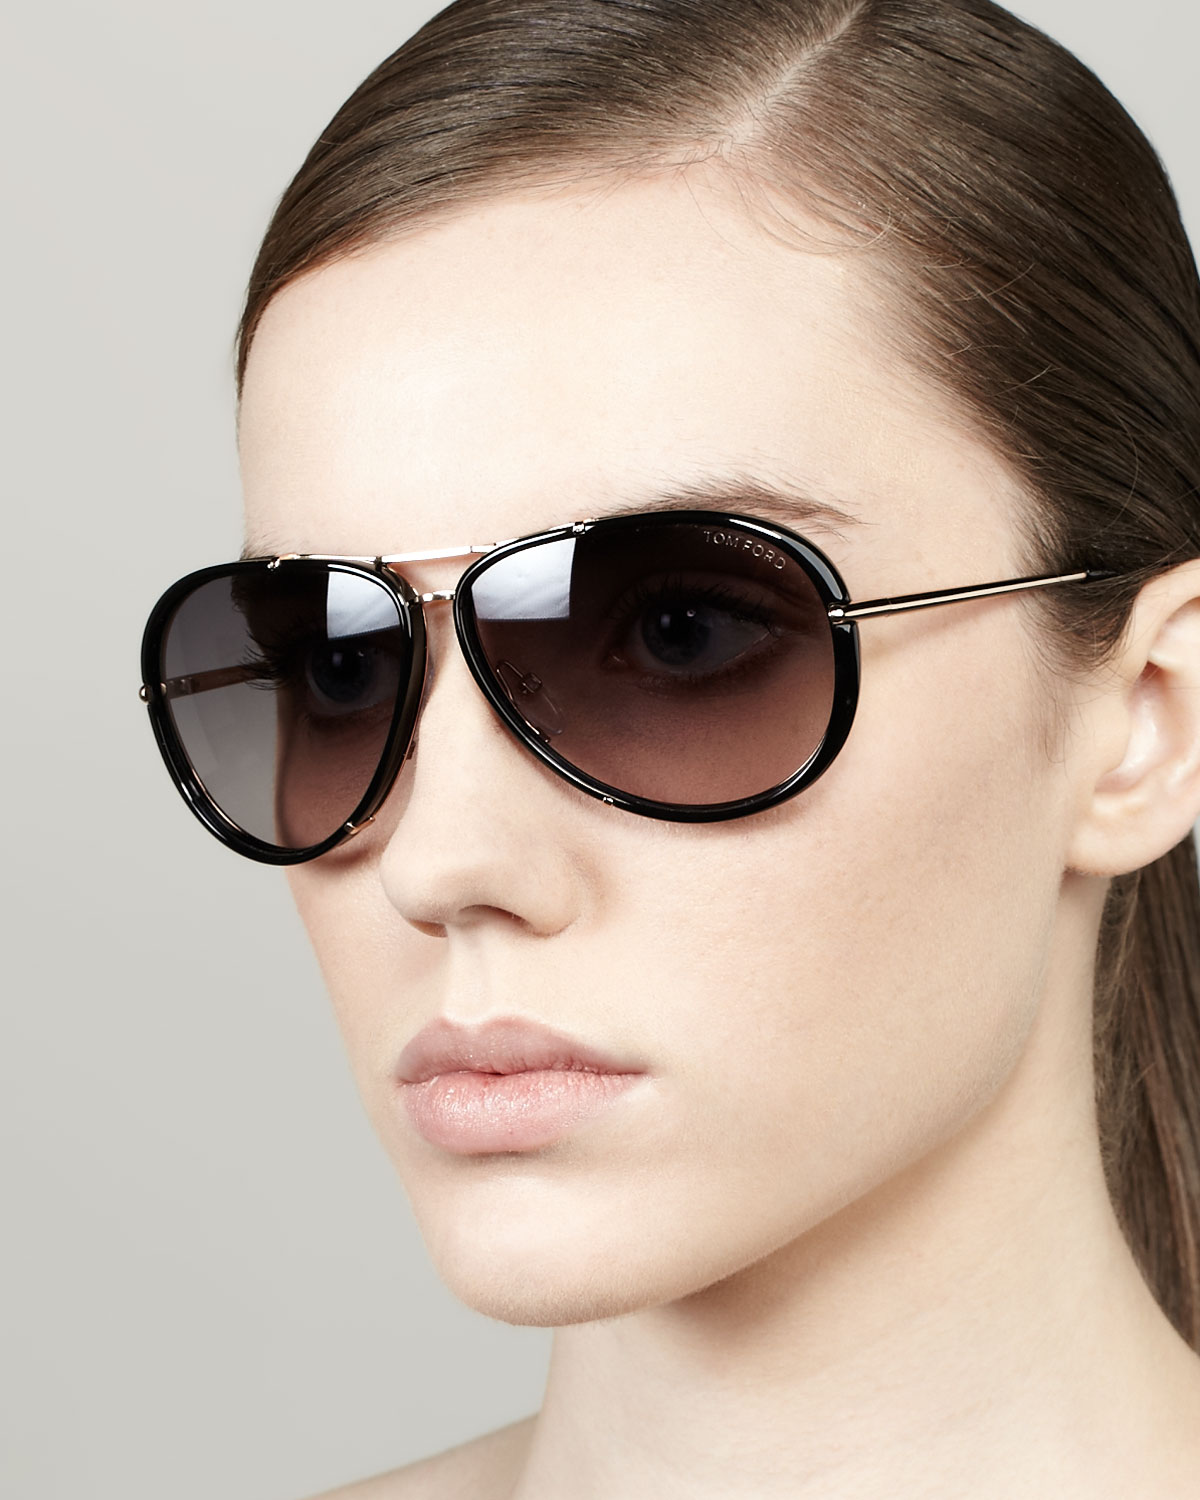 942f805a26d3 Tom Ford Cyrille Aviator Sunglasses Amazon - Bitterroot Public Library